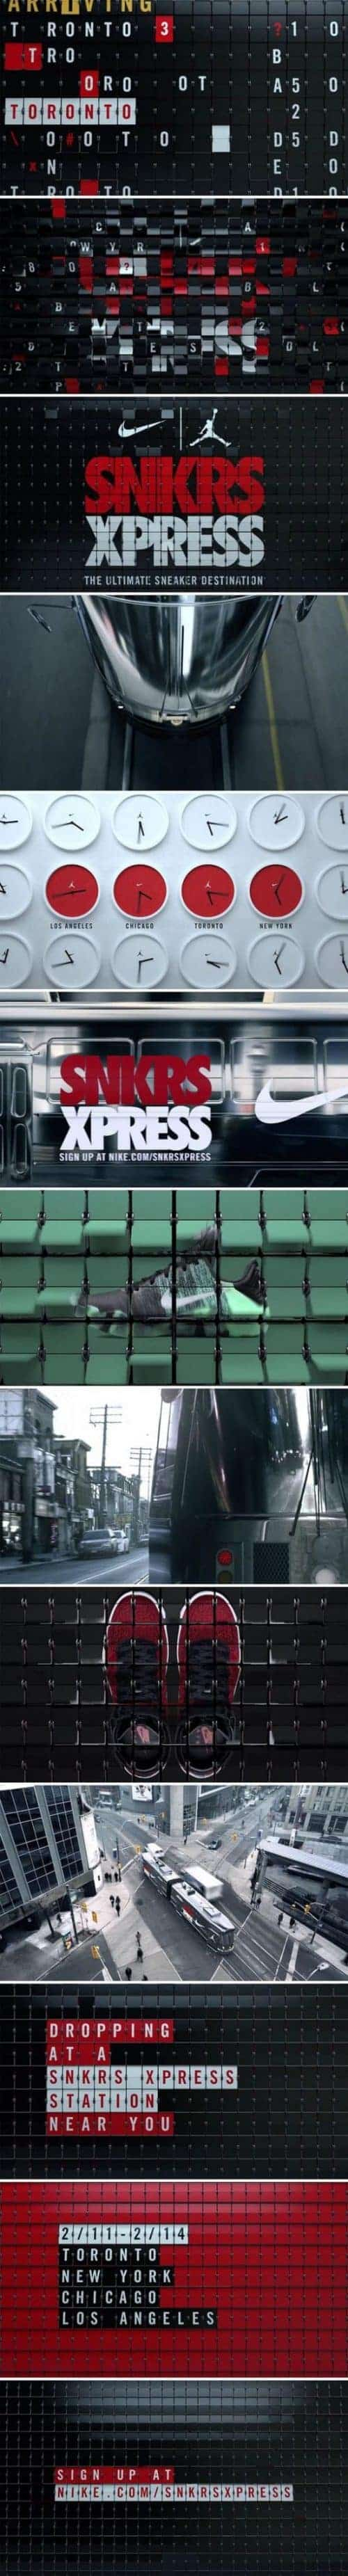 Nike-SNKRS-XPRESS-Title-Sequence-553×4096